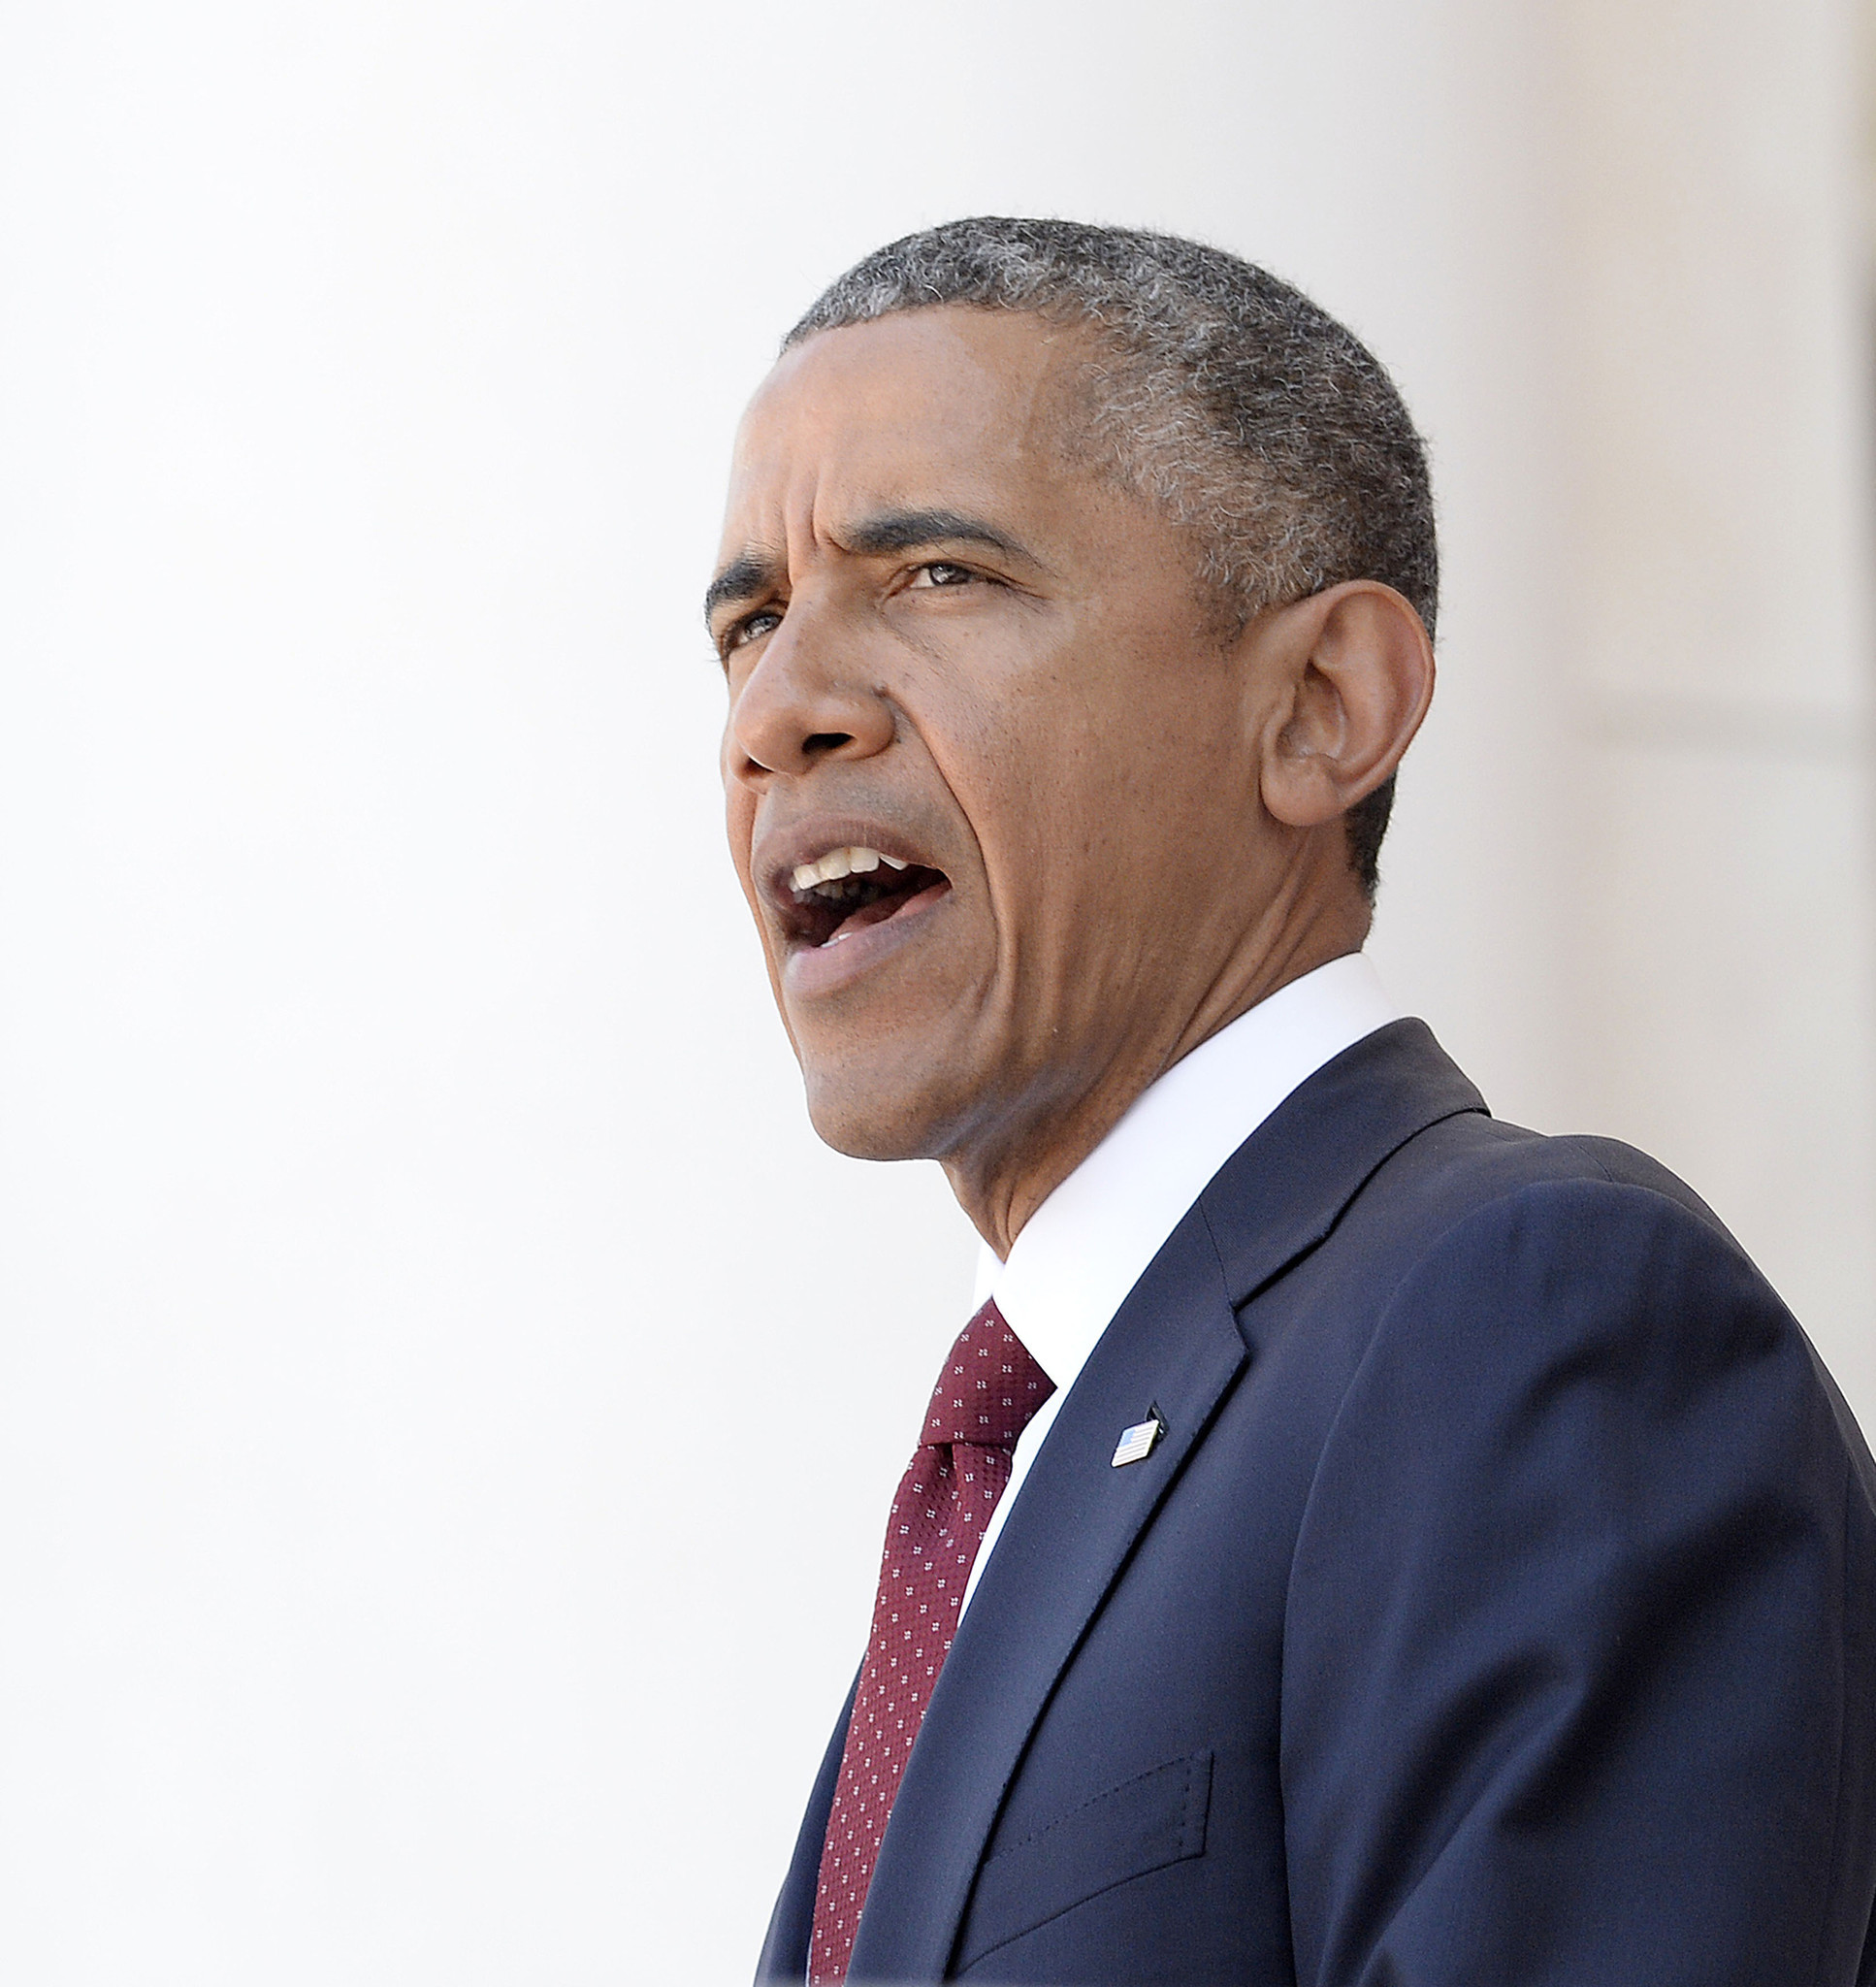 With new EPA water rule, Obama again takes executive action on environment